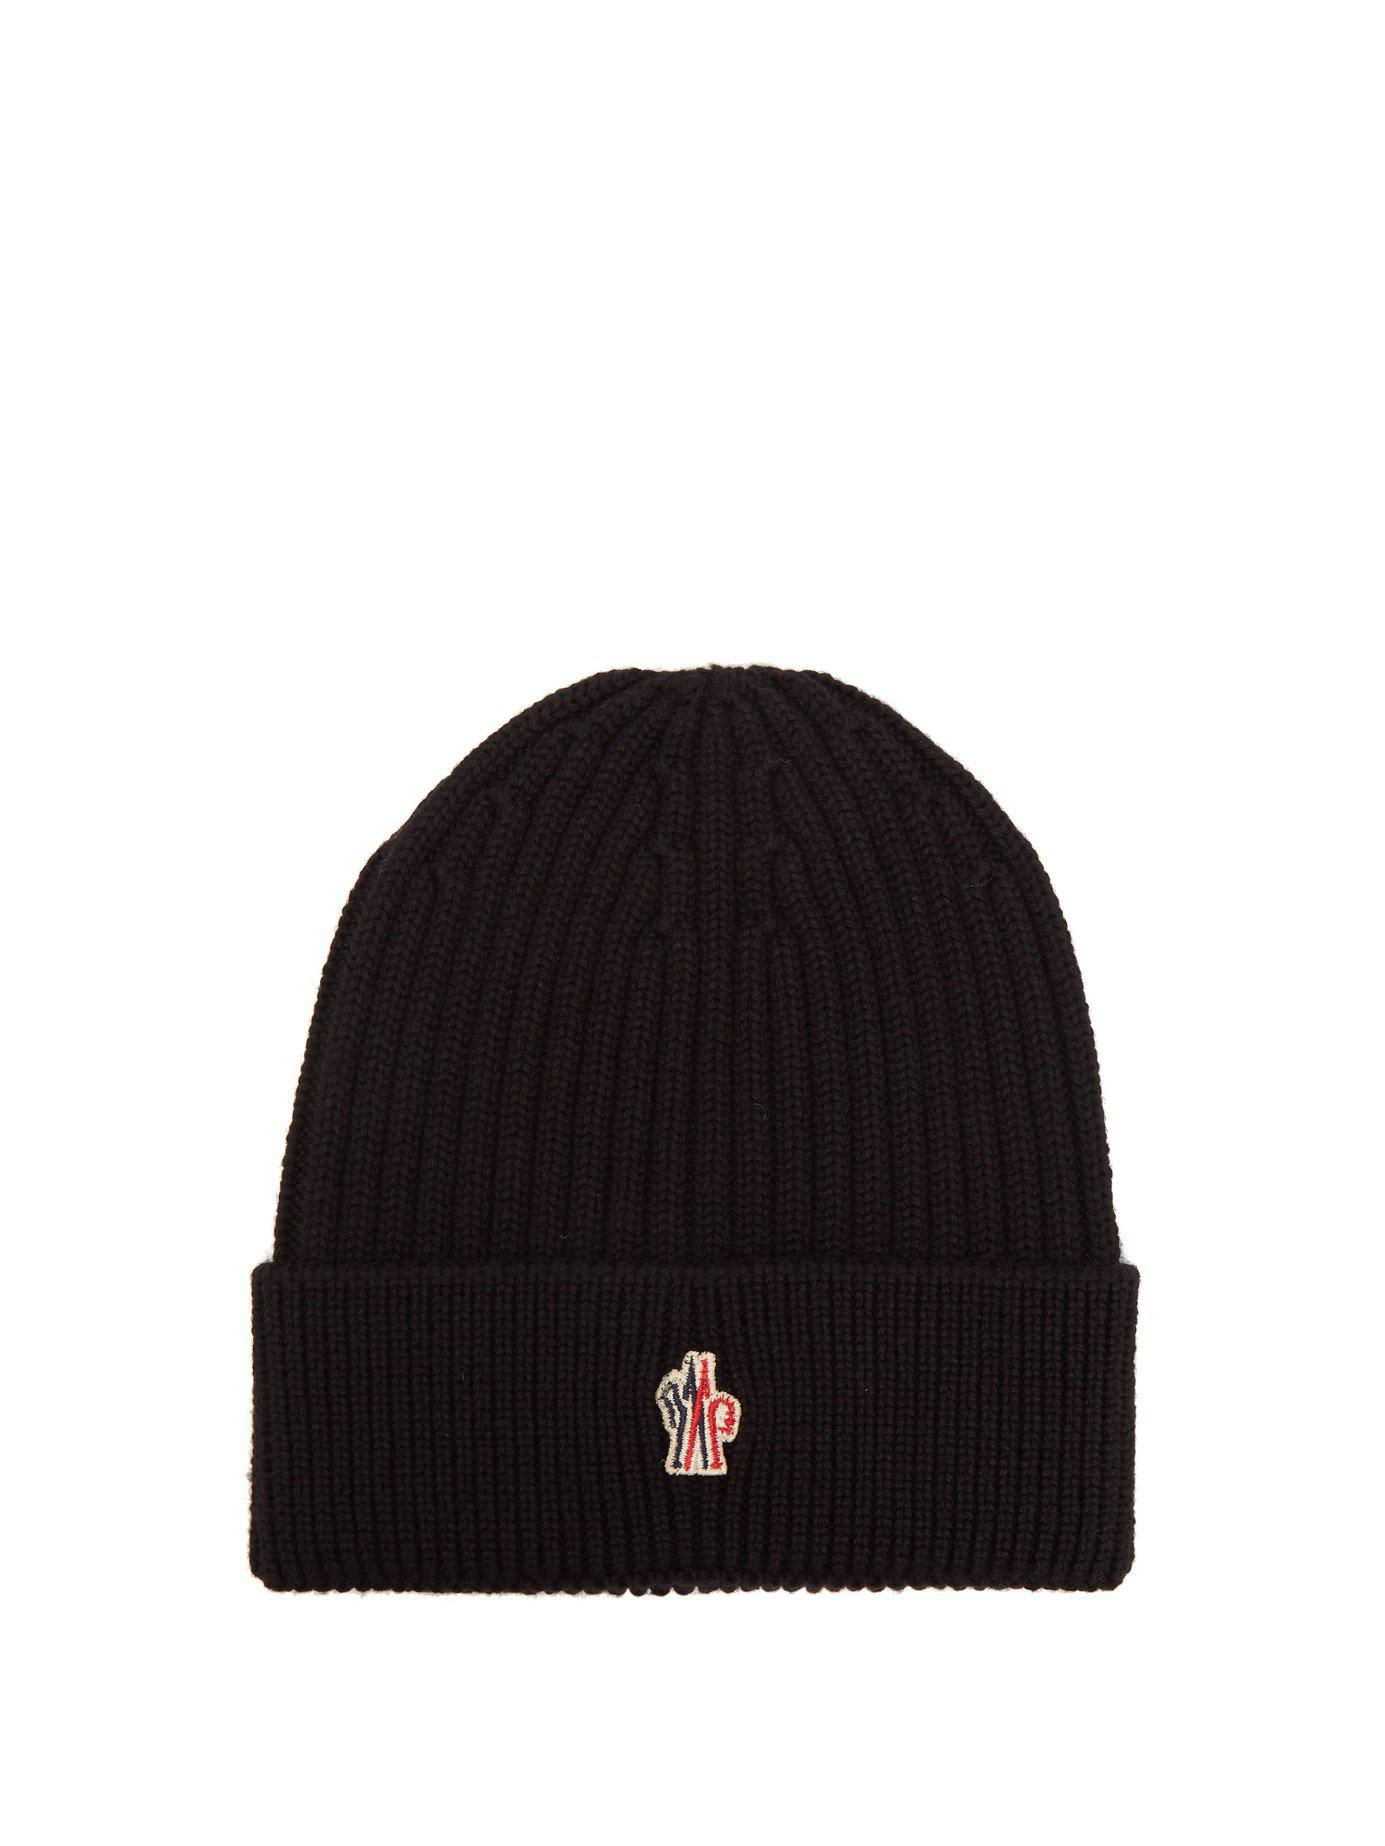 664c50680de Moncler Grenoble Logo Virgin Wool Beanie Hat in Black for Men - Save ...